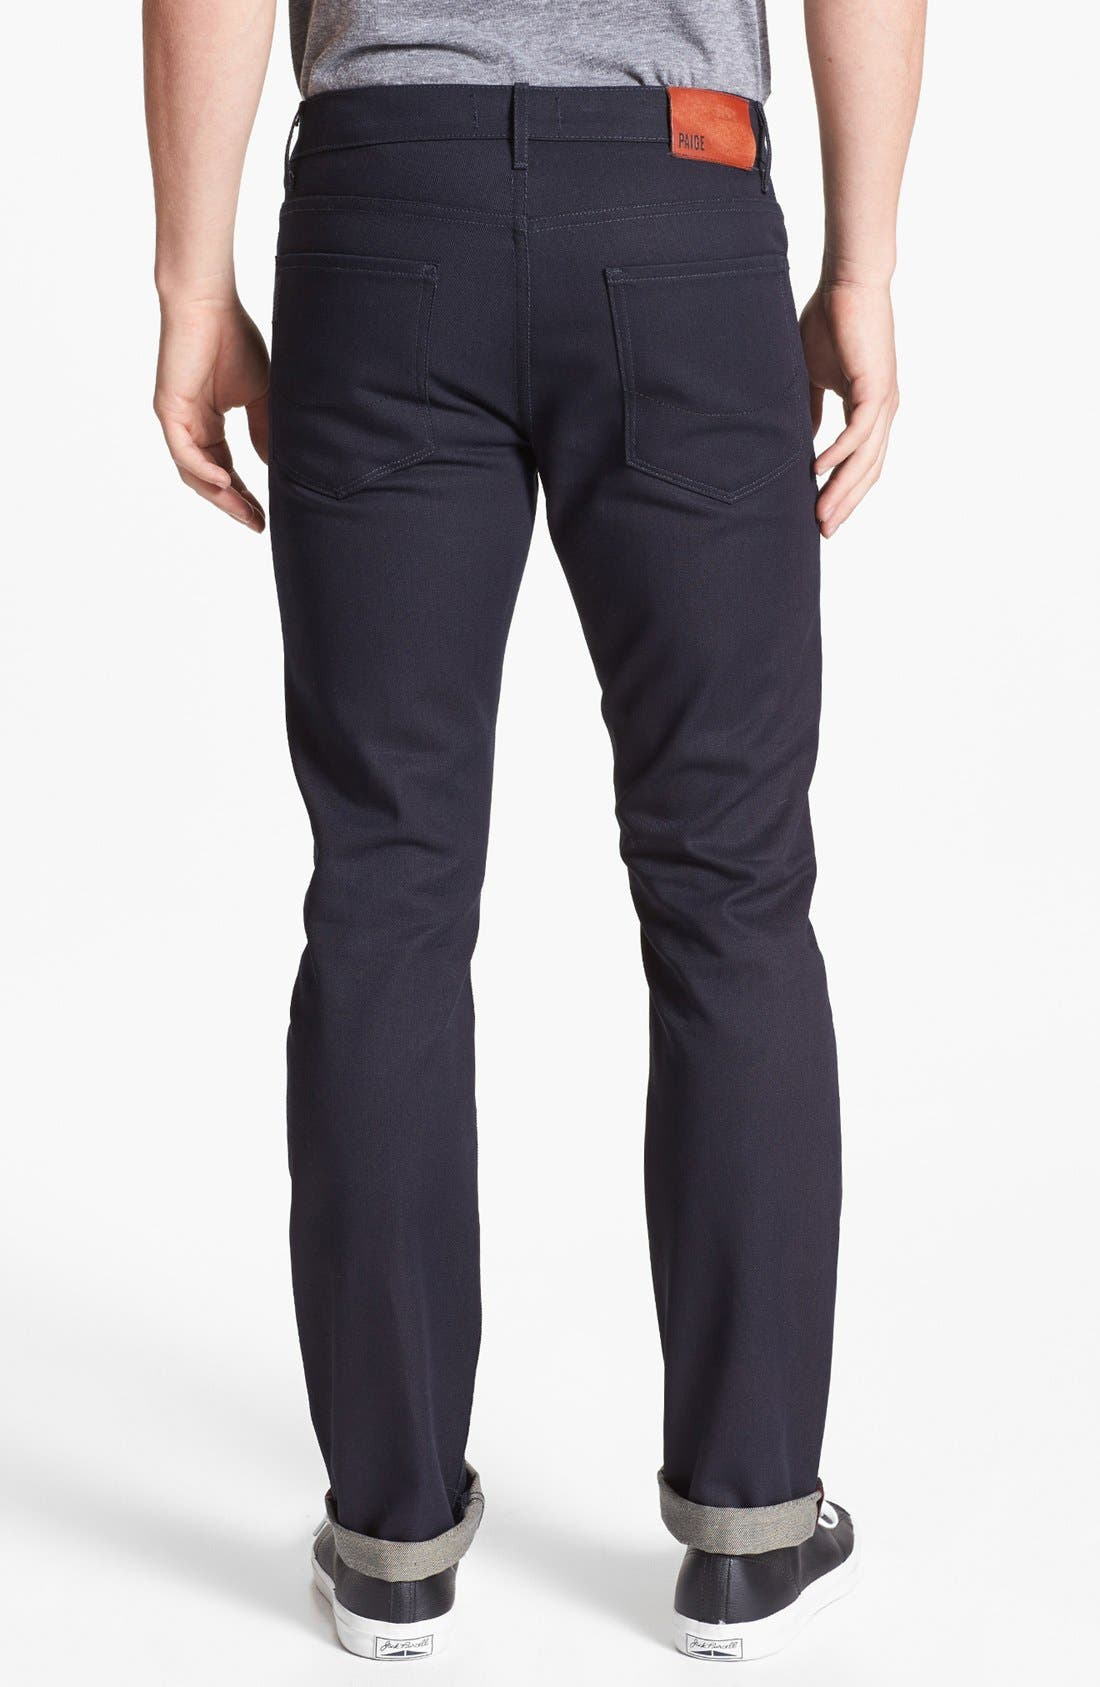 Main Image - PAIGE 'Federal' Skinny Fit Selvedge Jeans (Eco Raw)